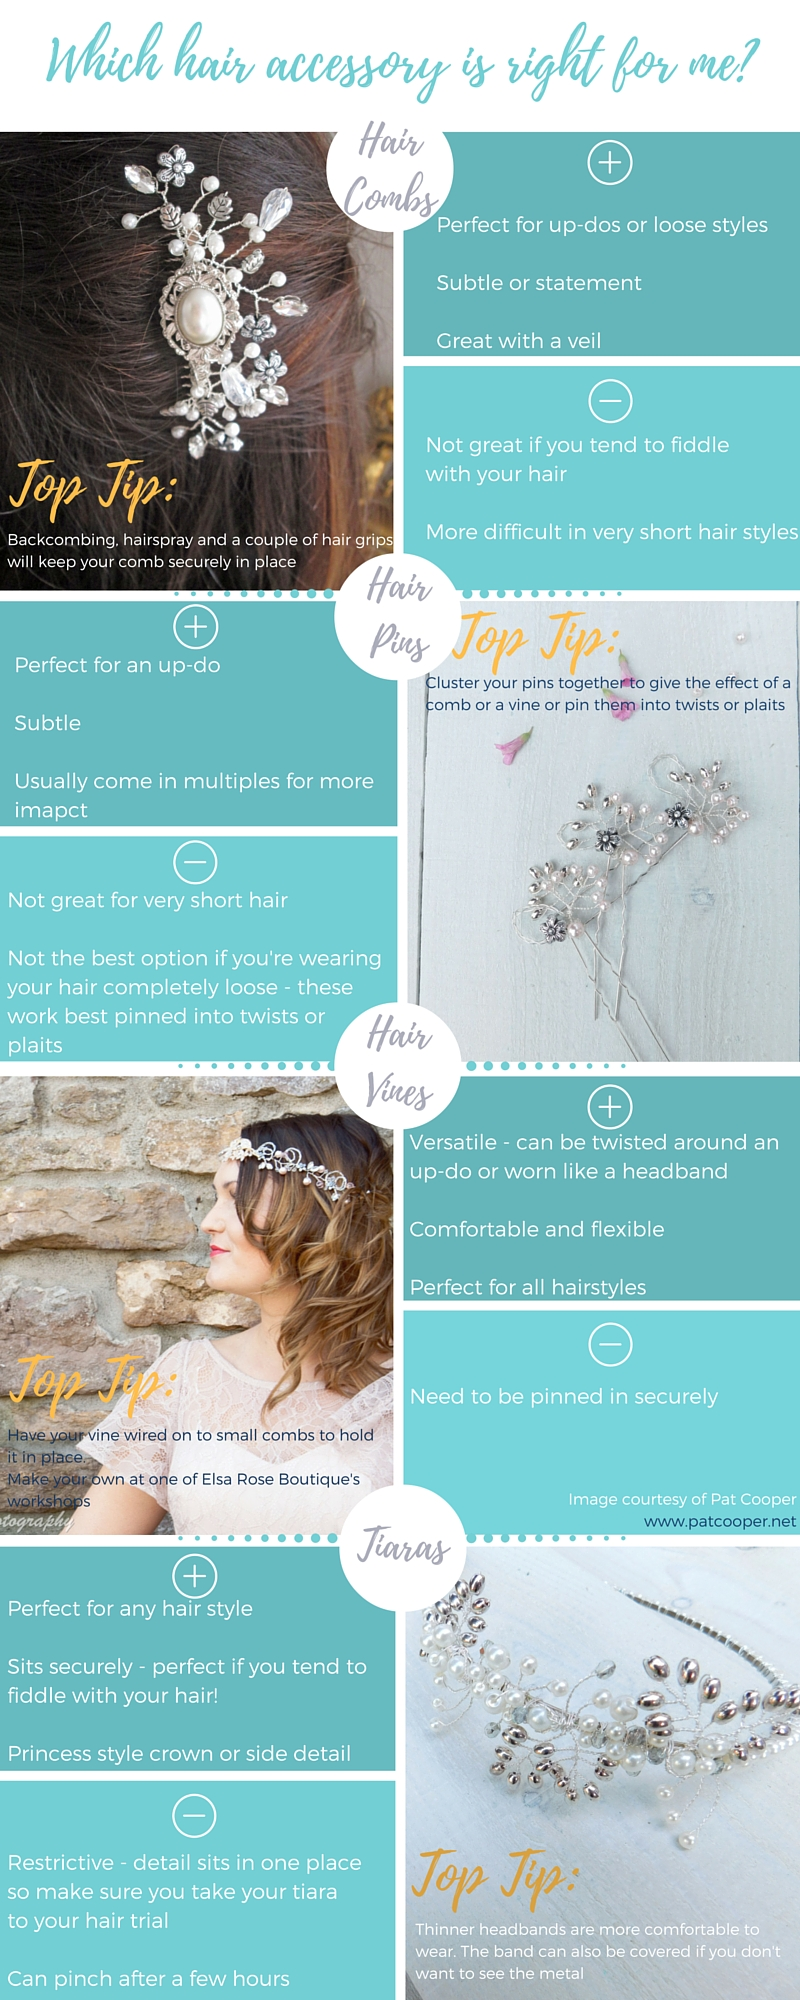 Which hair accessory is right for me infographic